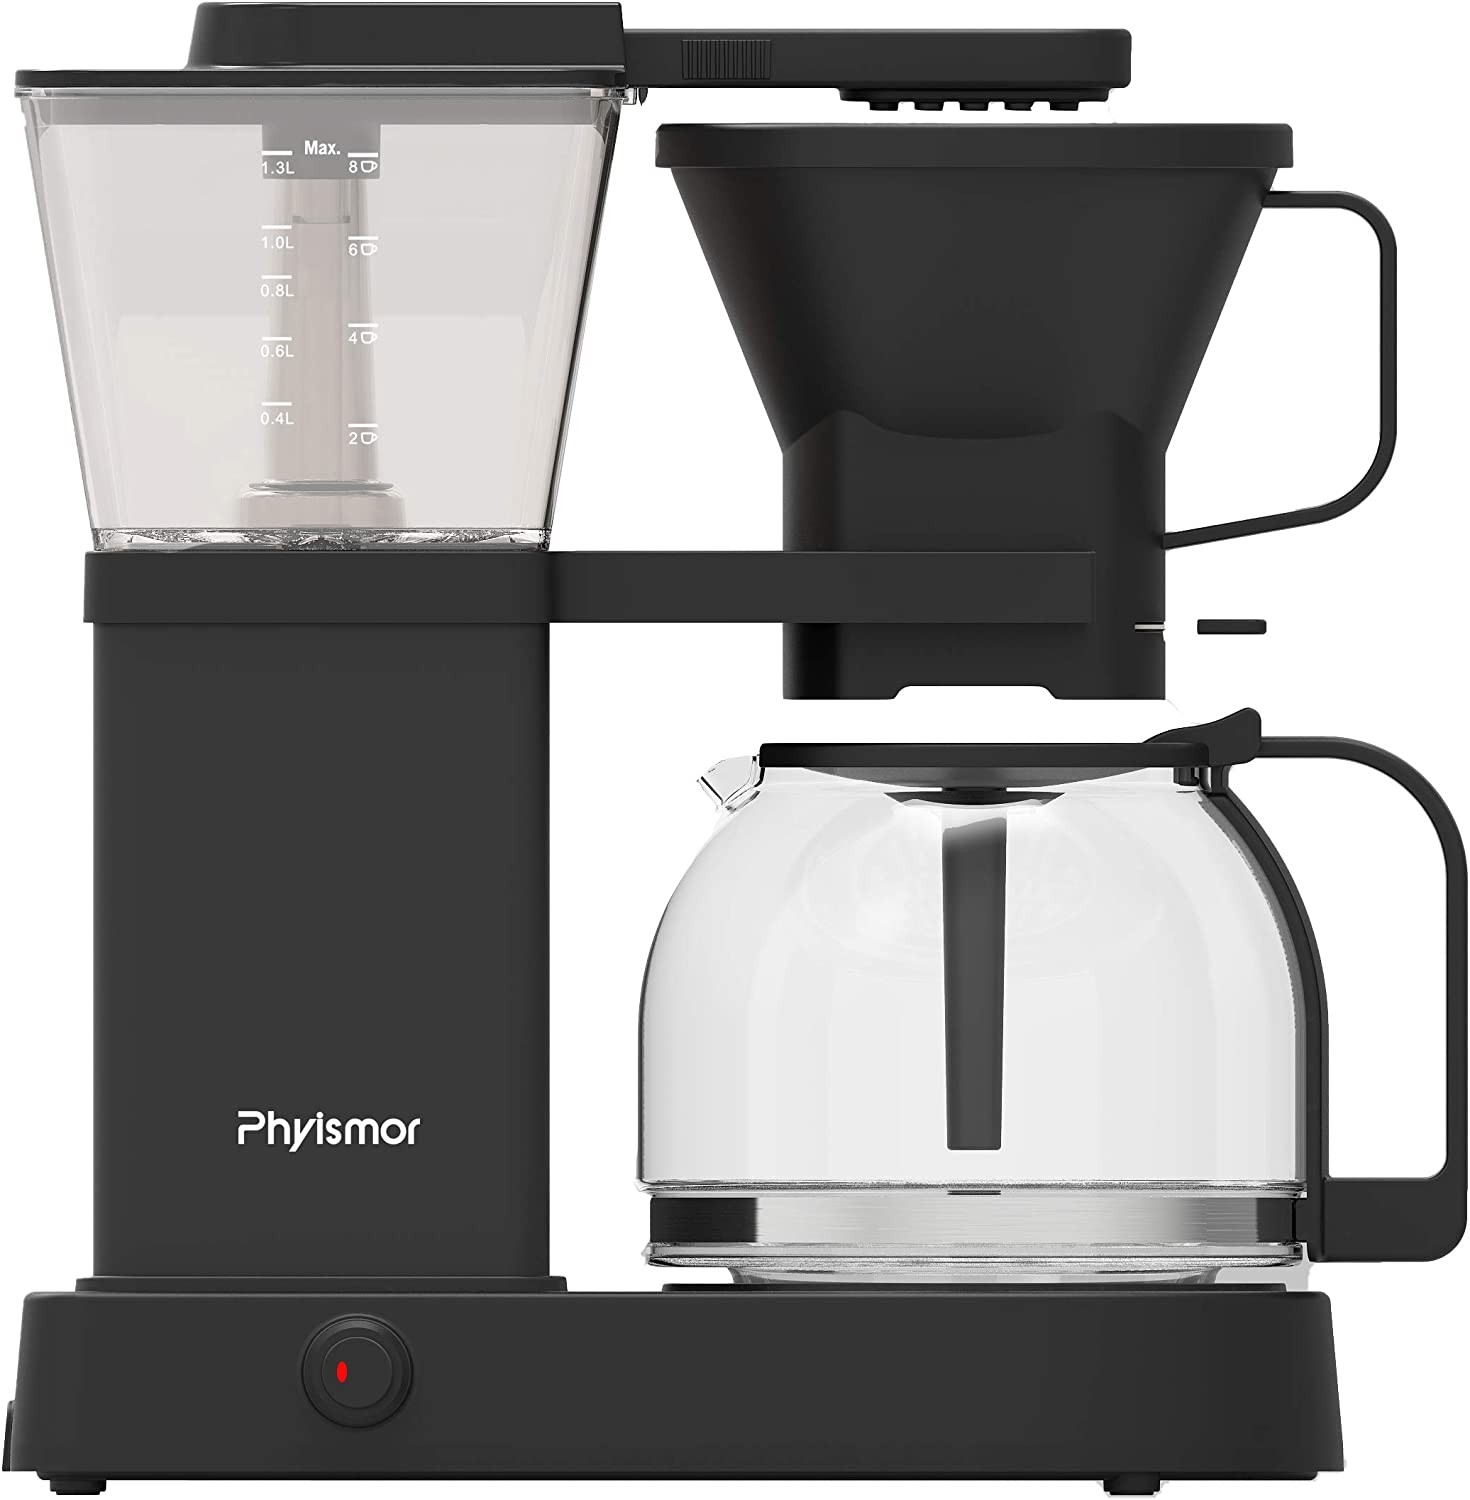 8 cup coffee maker, Automatic Drip-Stop Coffee Maker, Borosilicate Glass Carafe, Pour Over Style, Pre-Infusion Mode